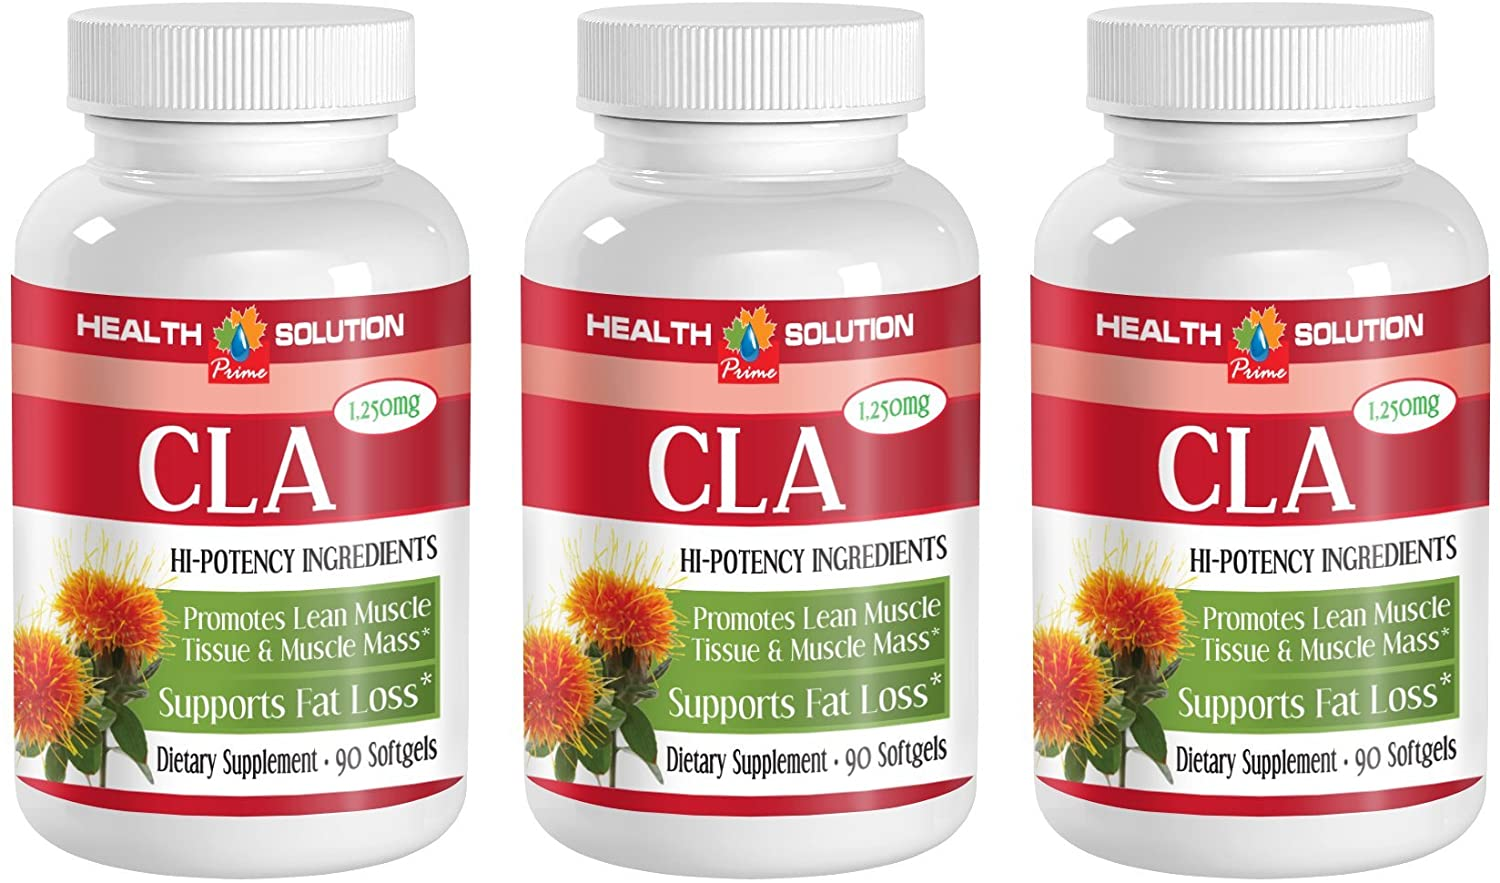 Cla Supplements for Belly Fat - CLA 1250mg - Increase Lean Mass (3 Bottles)